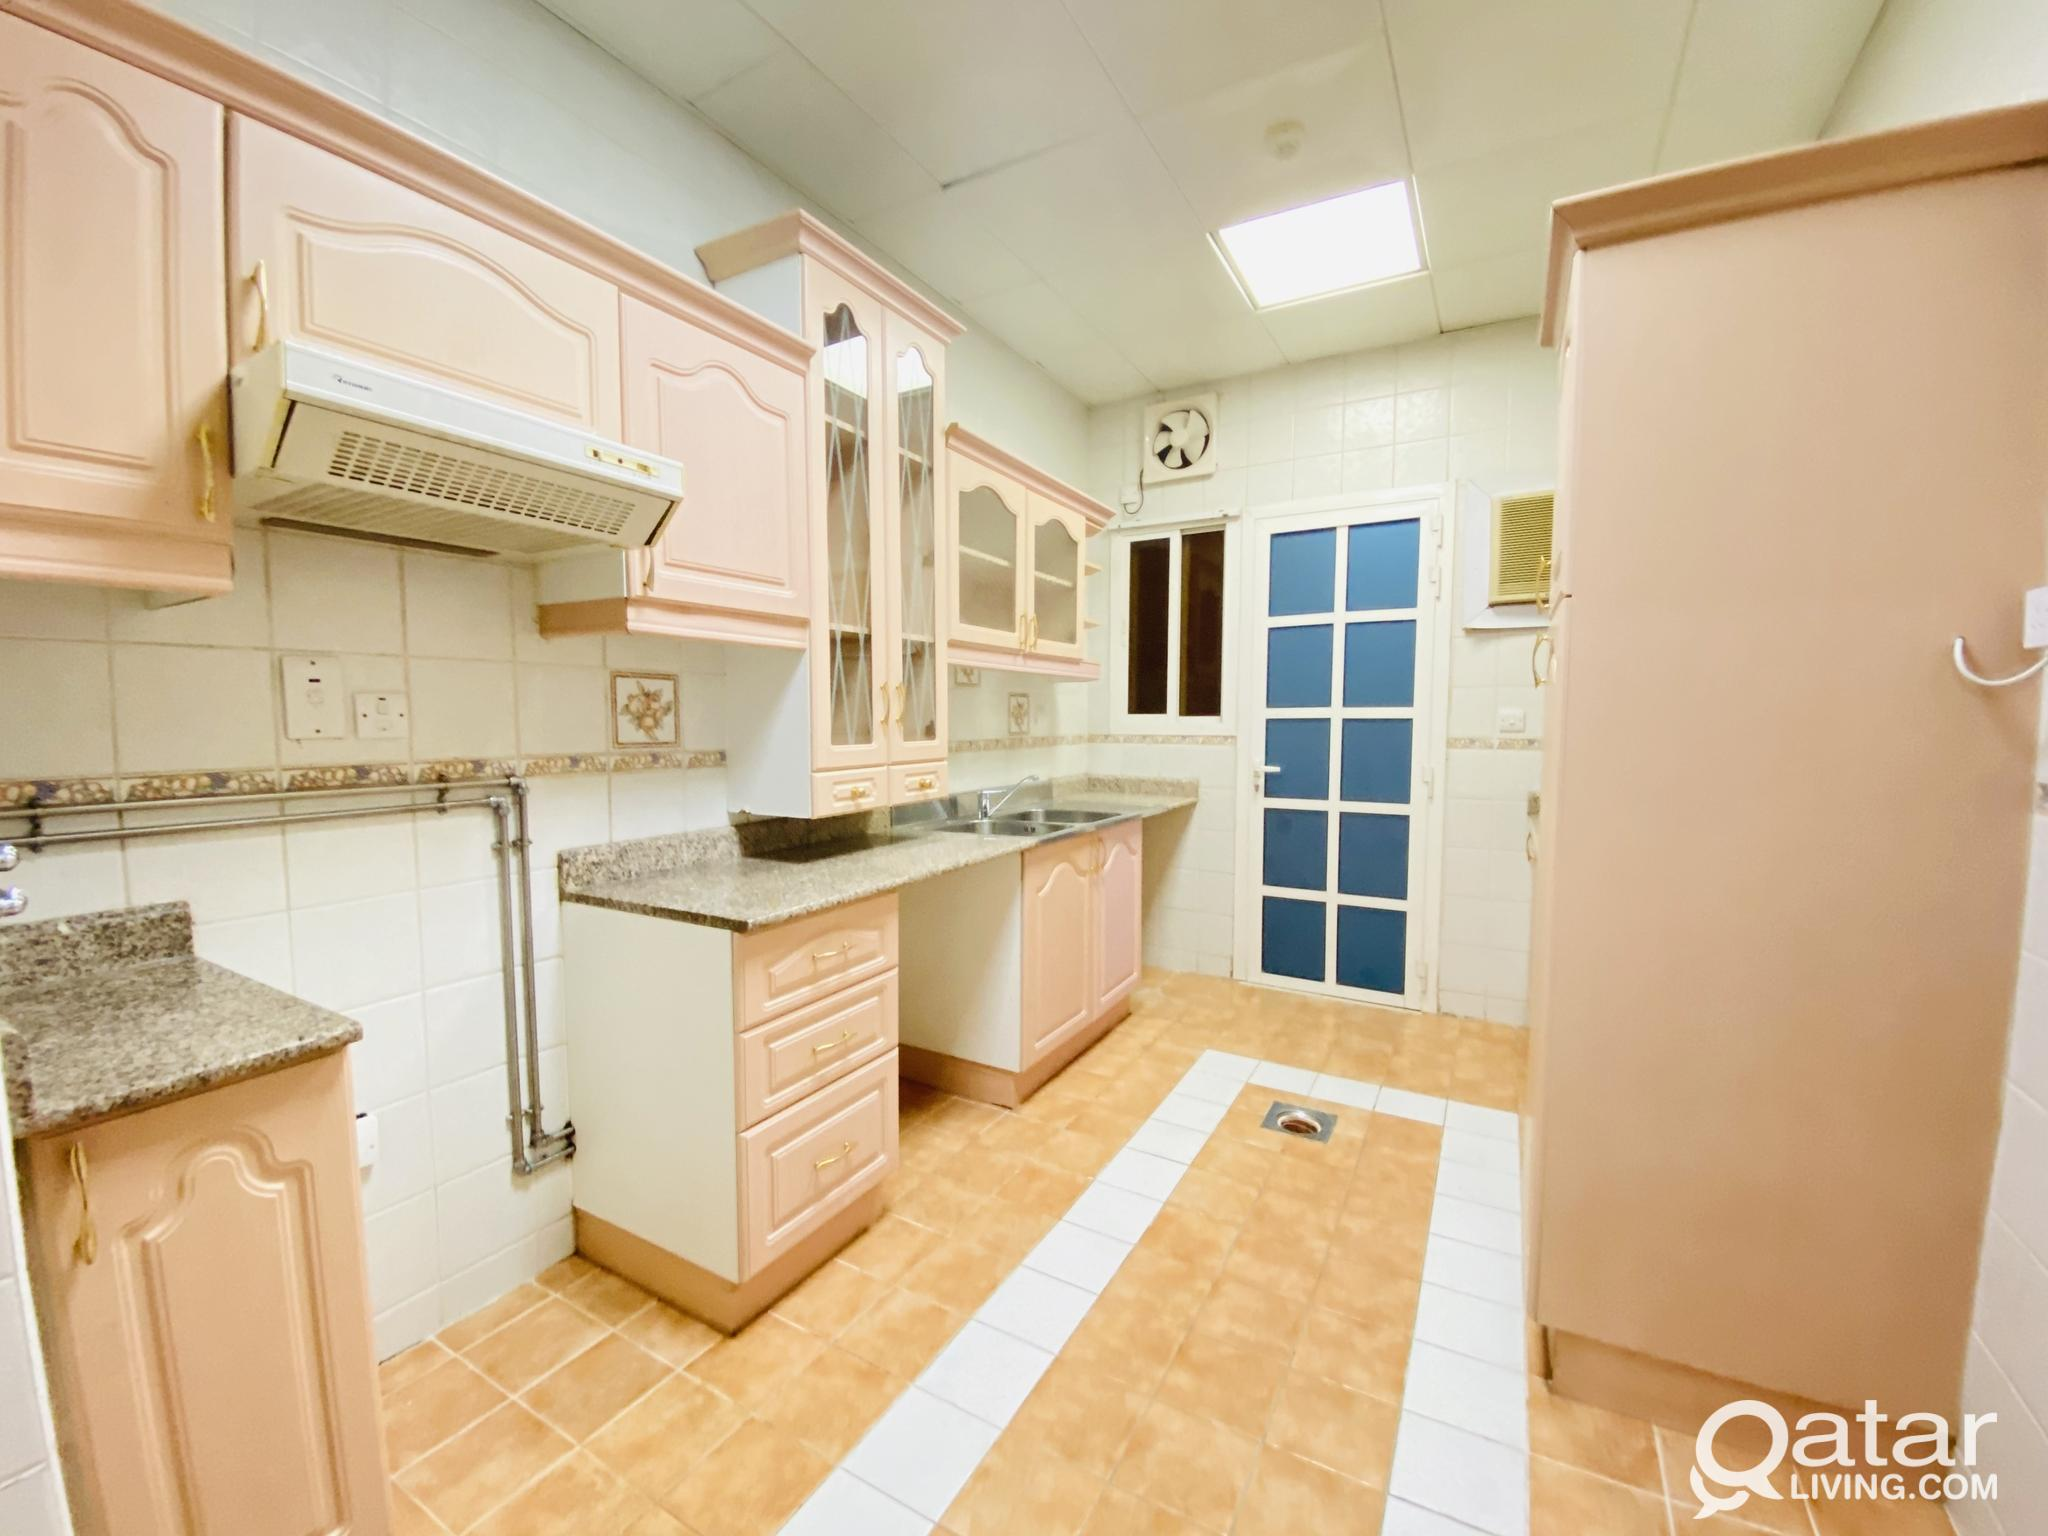 No commission - Brand New and Spacious 2 bedroom A